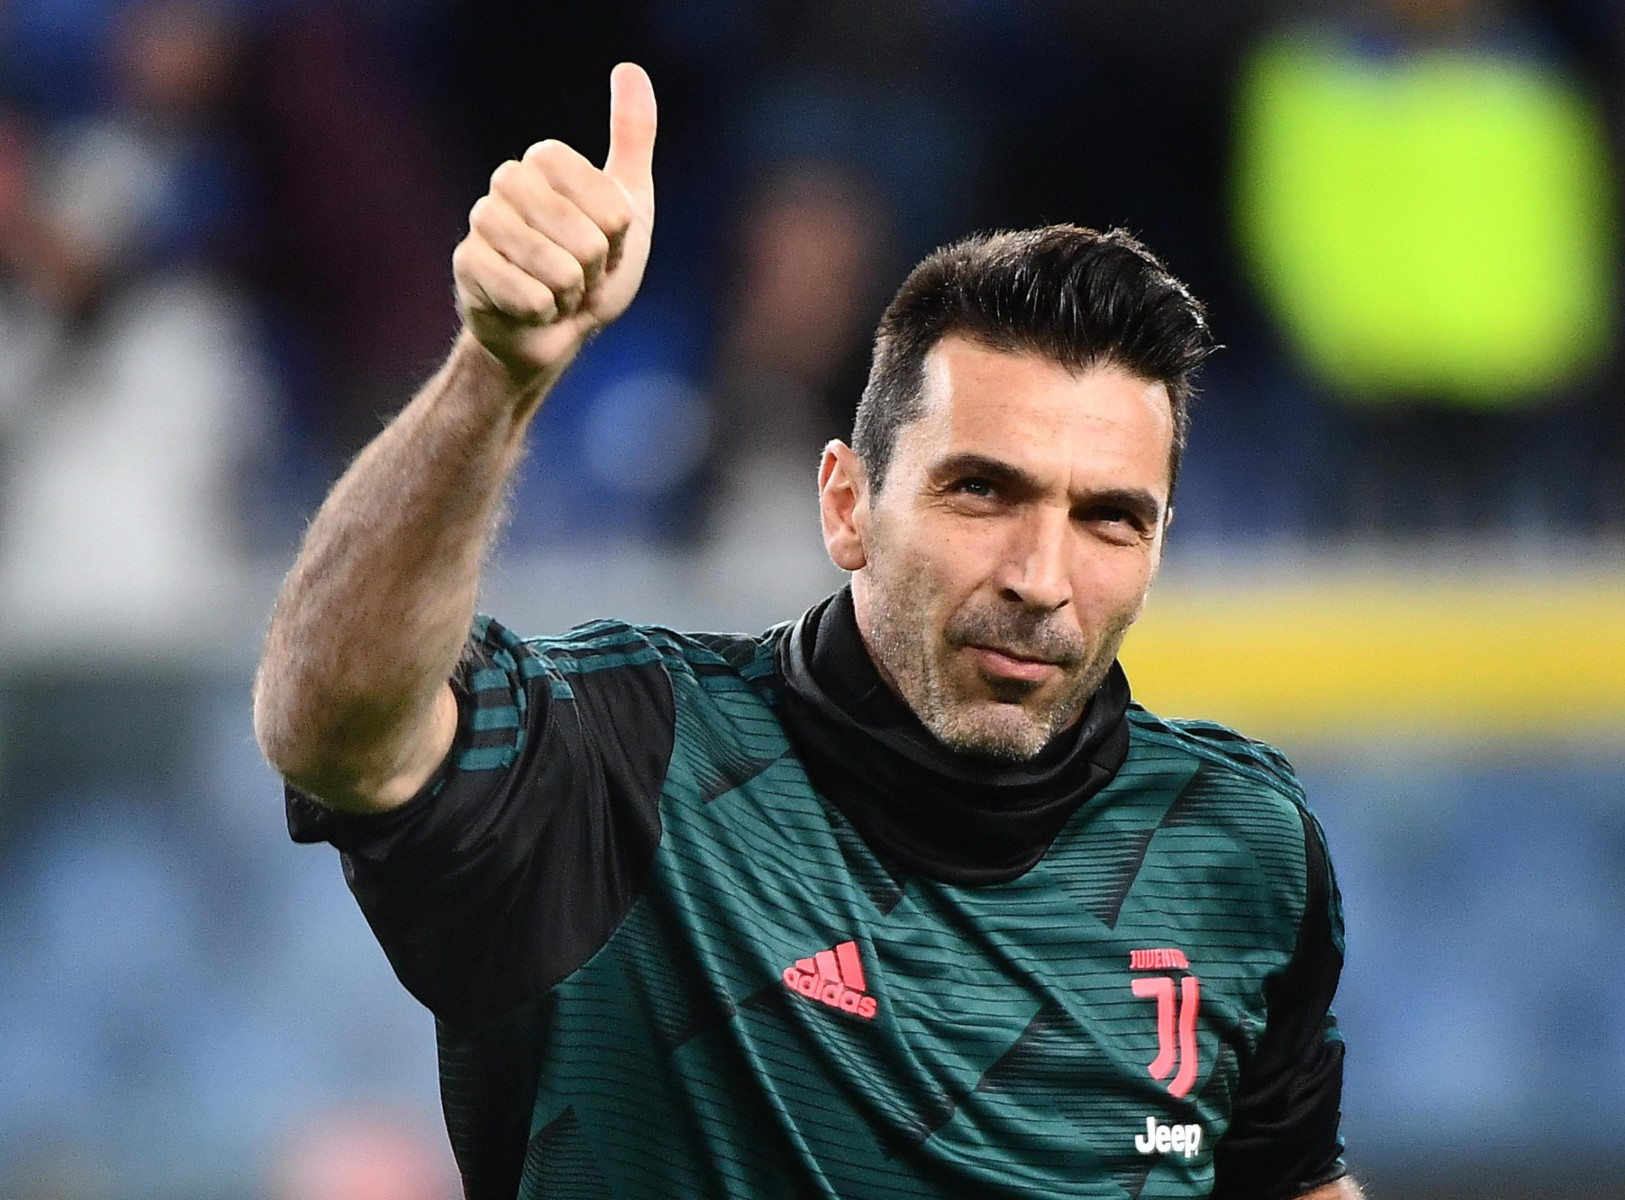 Gianluigi Buffon is in line to land a new contract at Juventus to take him into his 19th season with the club